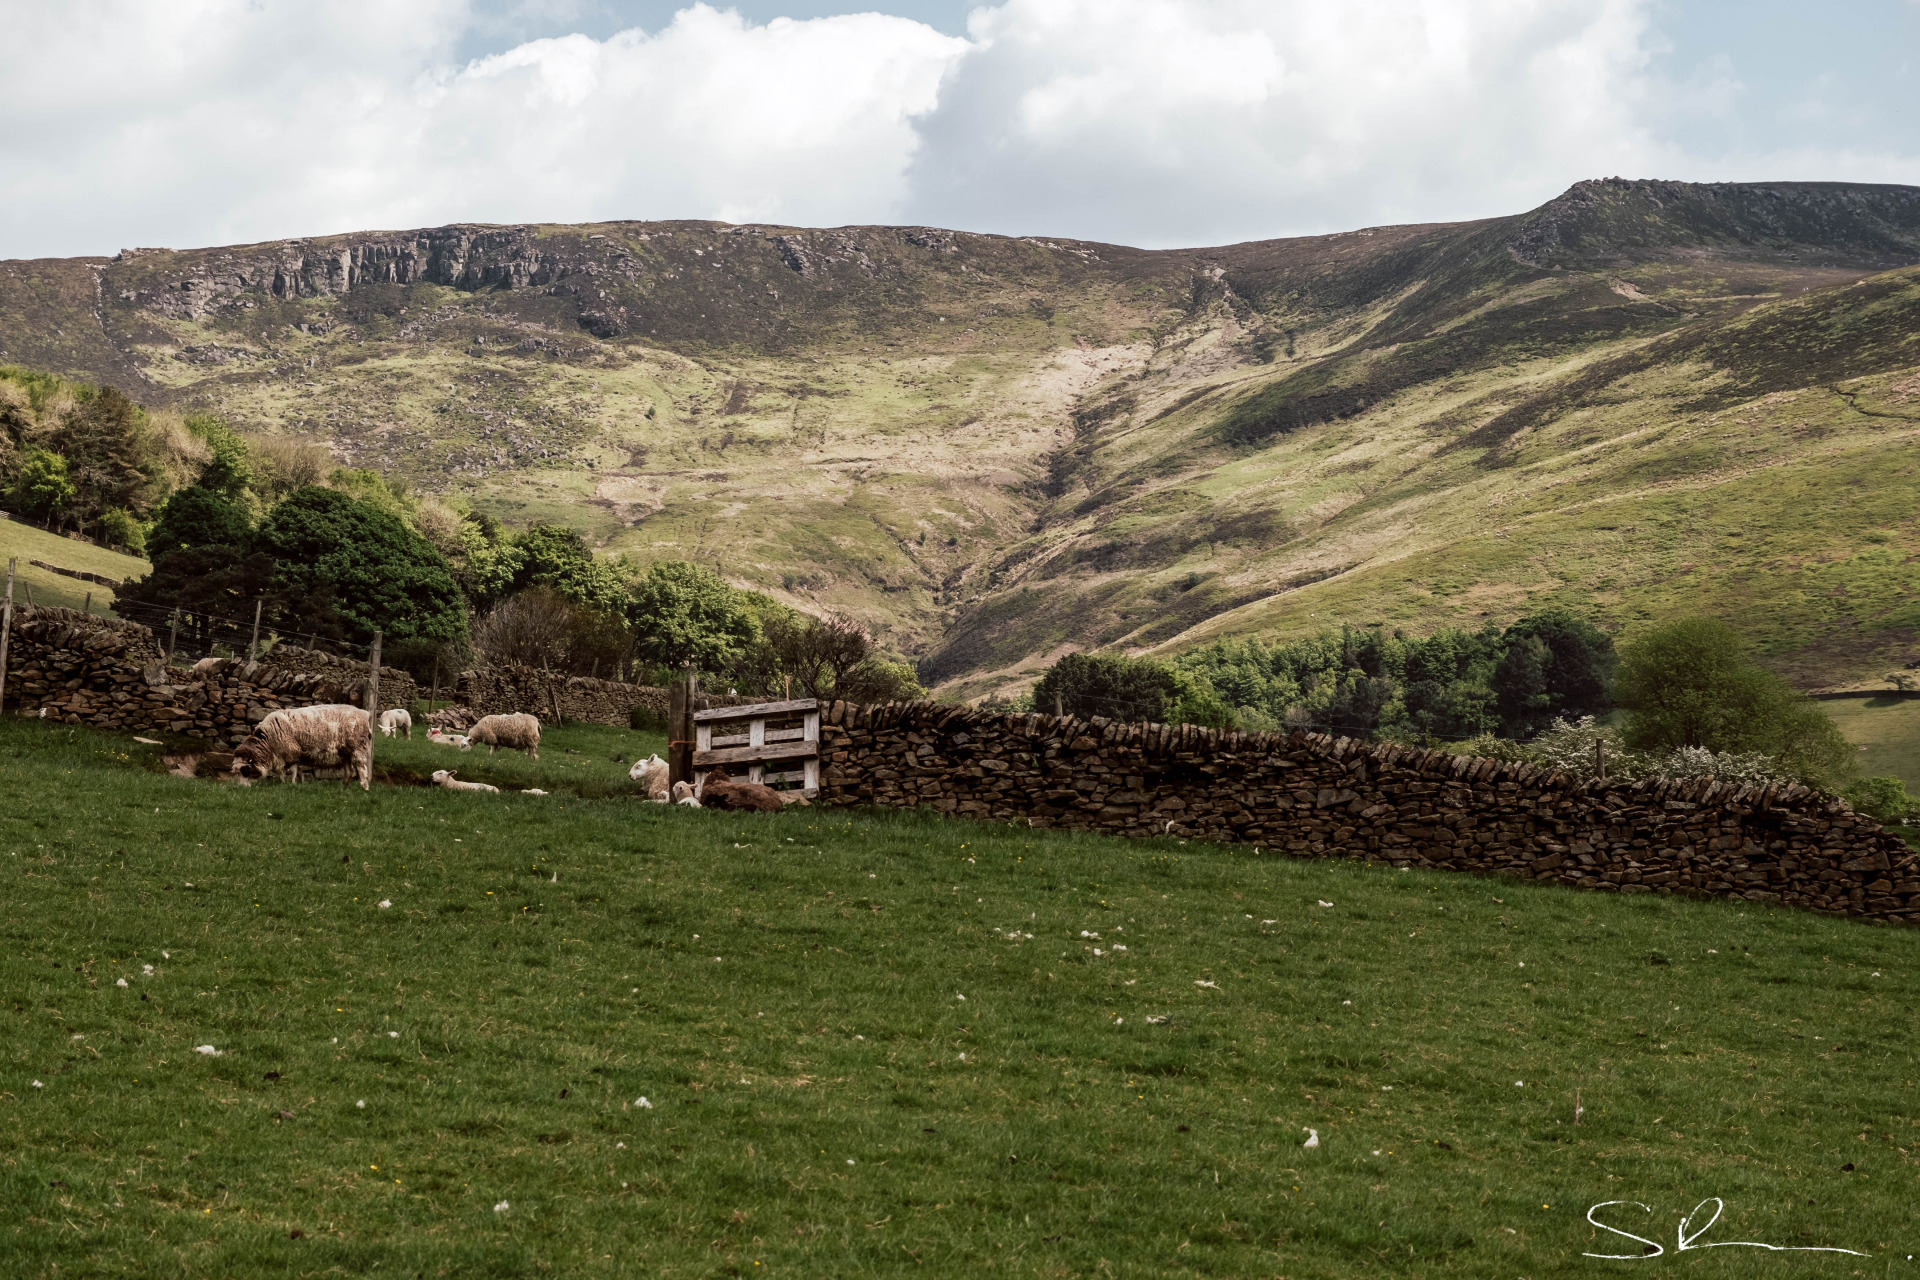 Looking to Kinder Scout